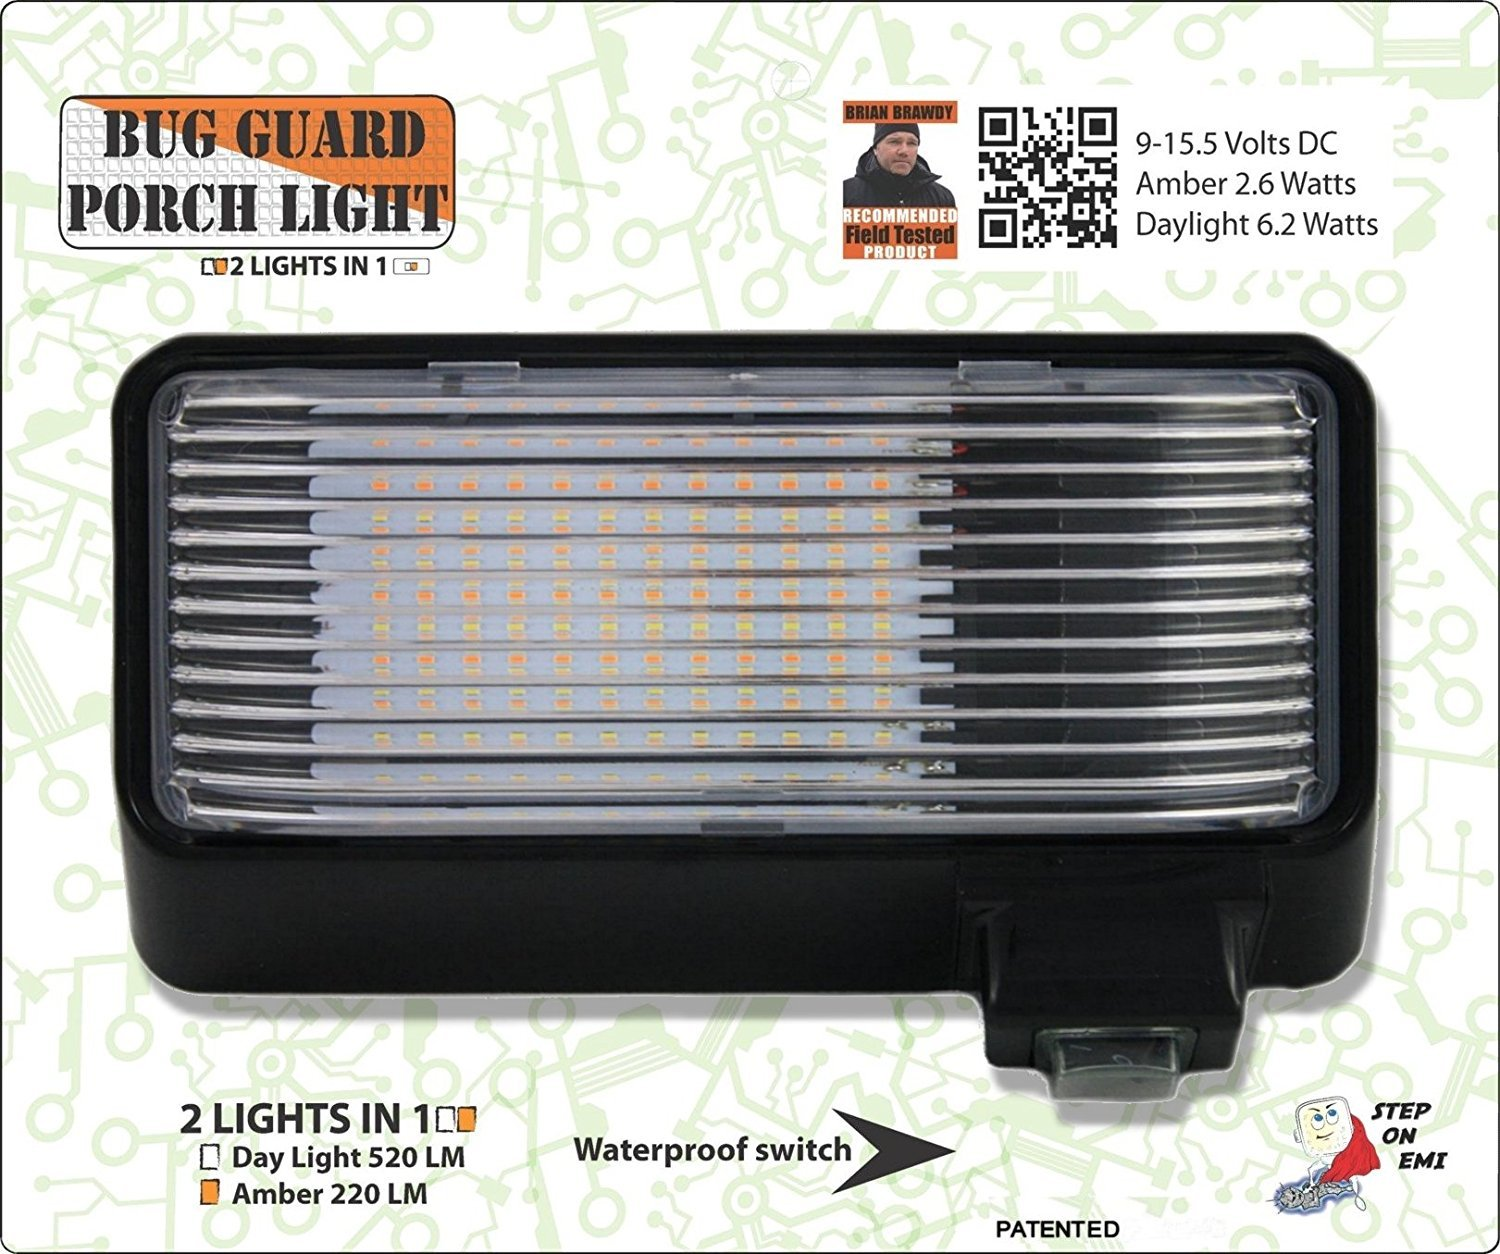 Amber BUG-GUARD BG520B 12 Volt Functional Exterior RV Long-Life LED Flood Porch Light with Bright 220 Lumen 2 Lights in one. White //520 Lunen